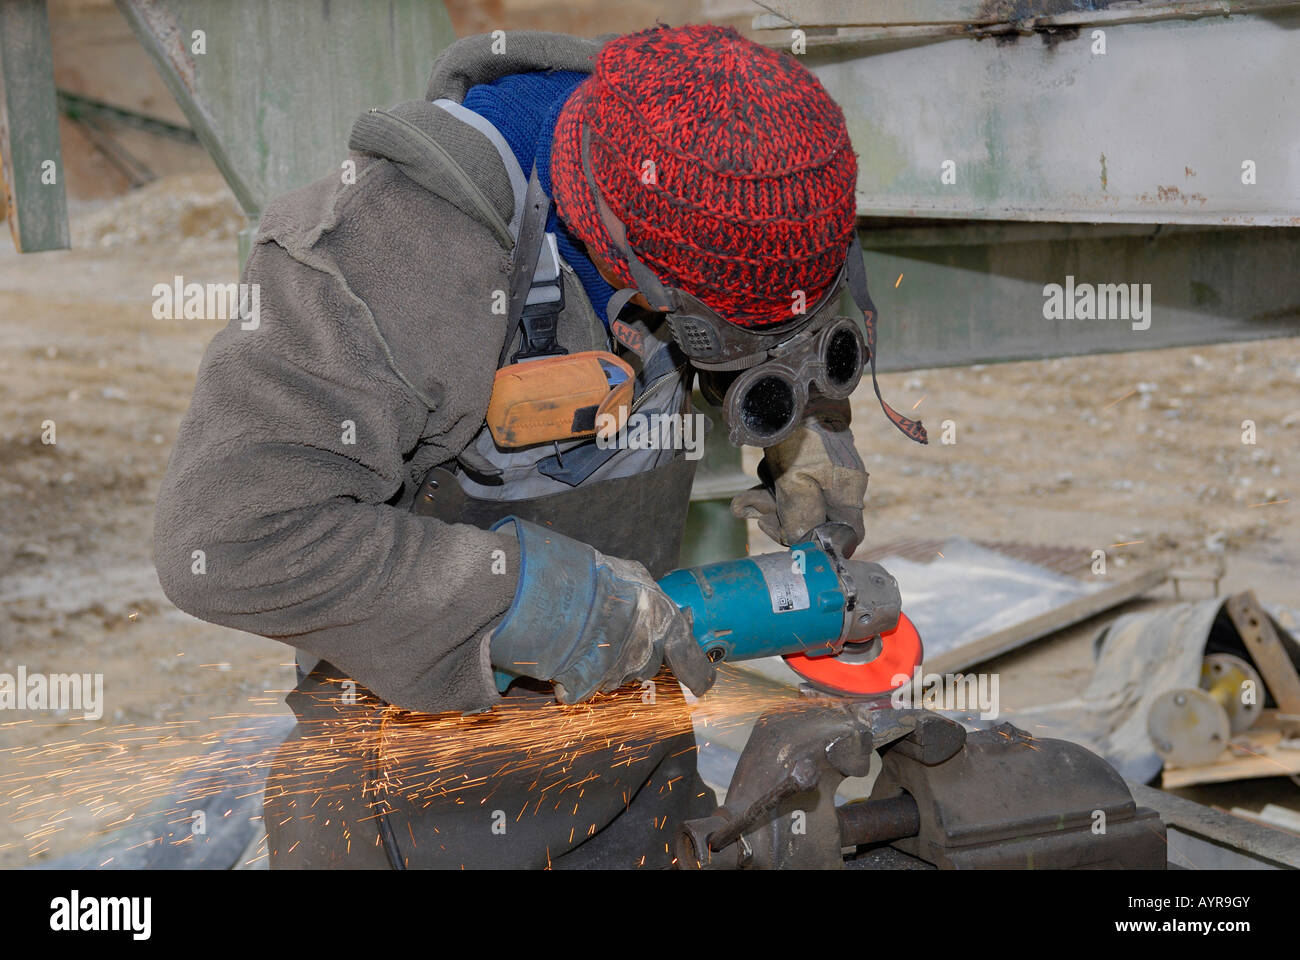 Man working metal with angle grinder - Stock Image